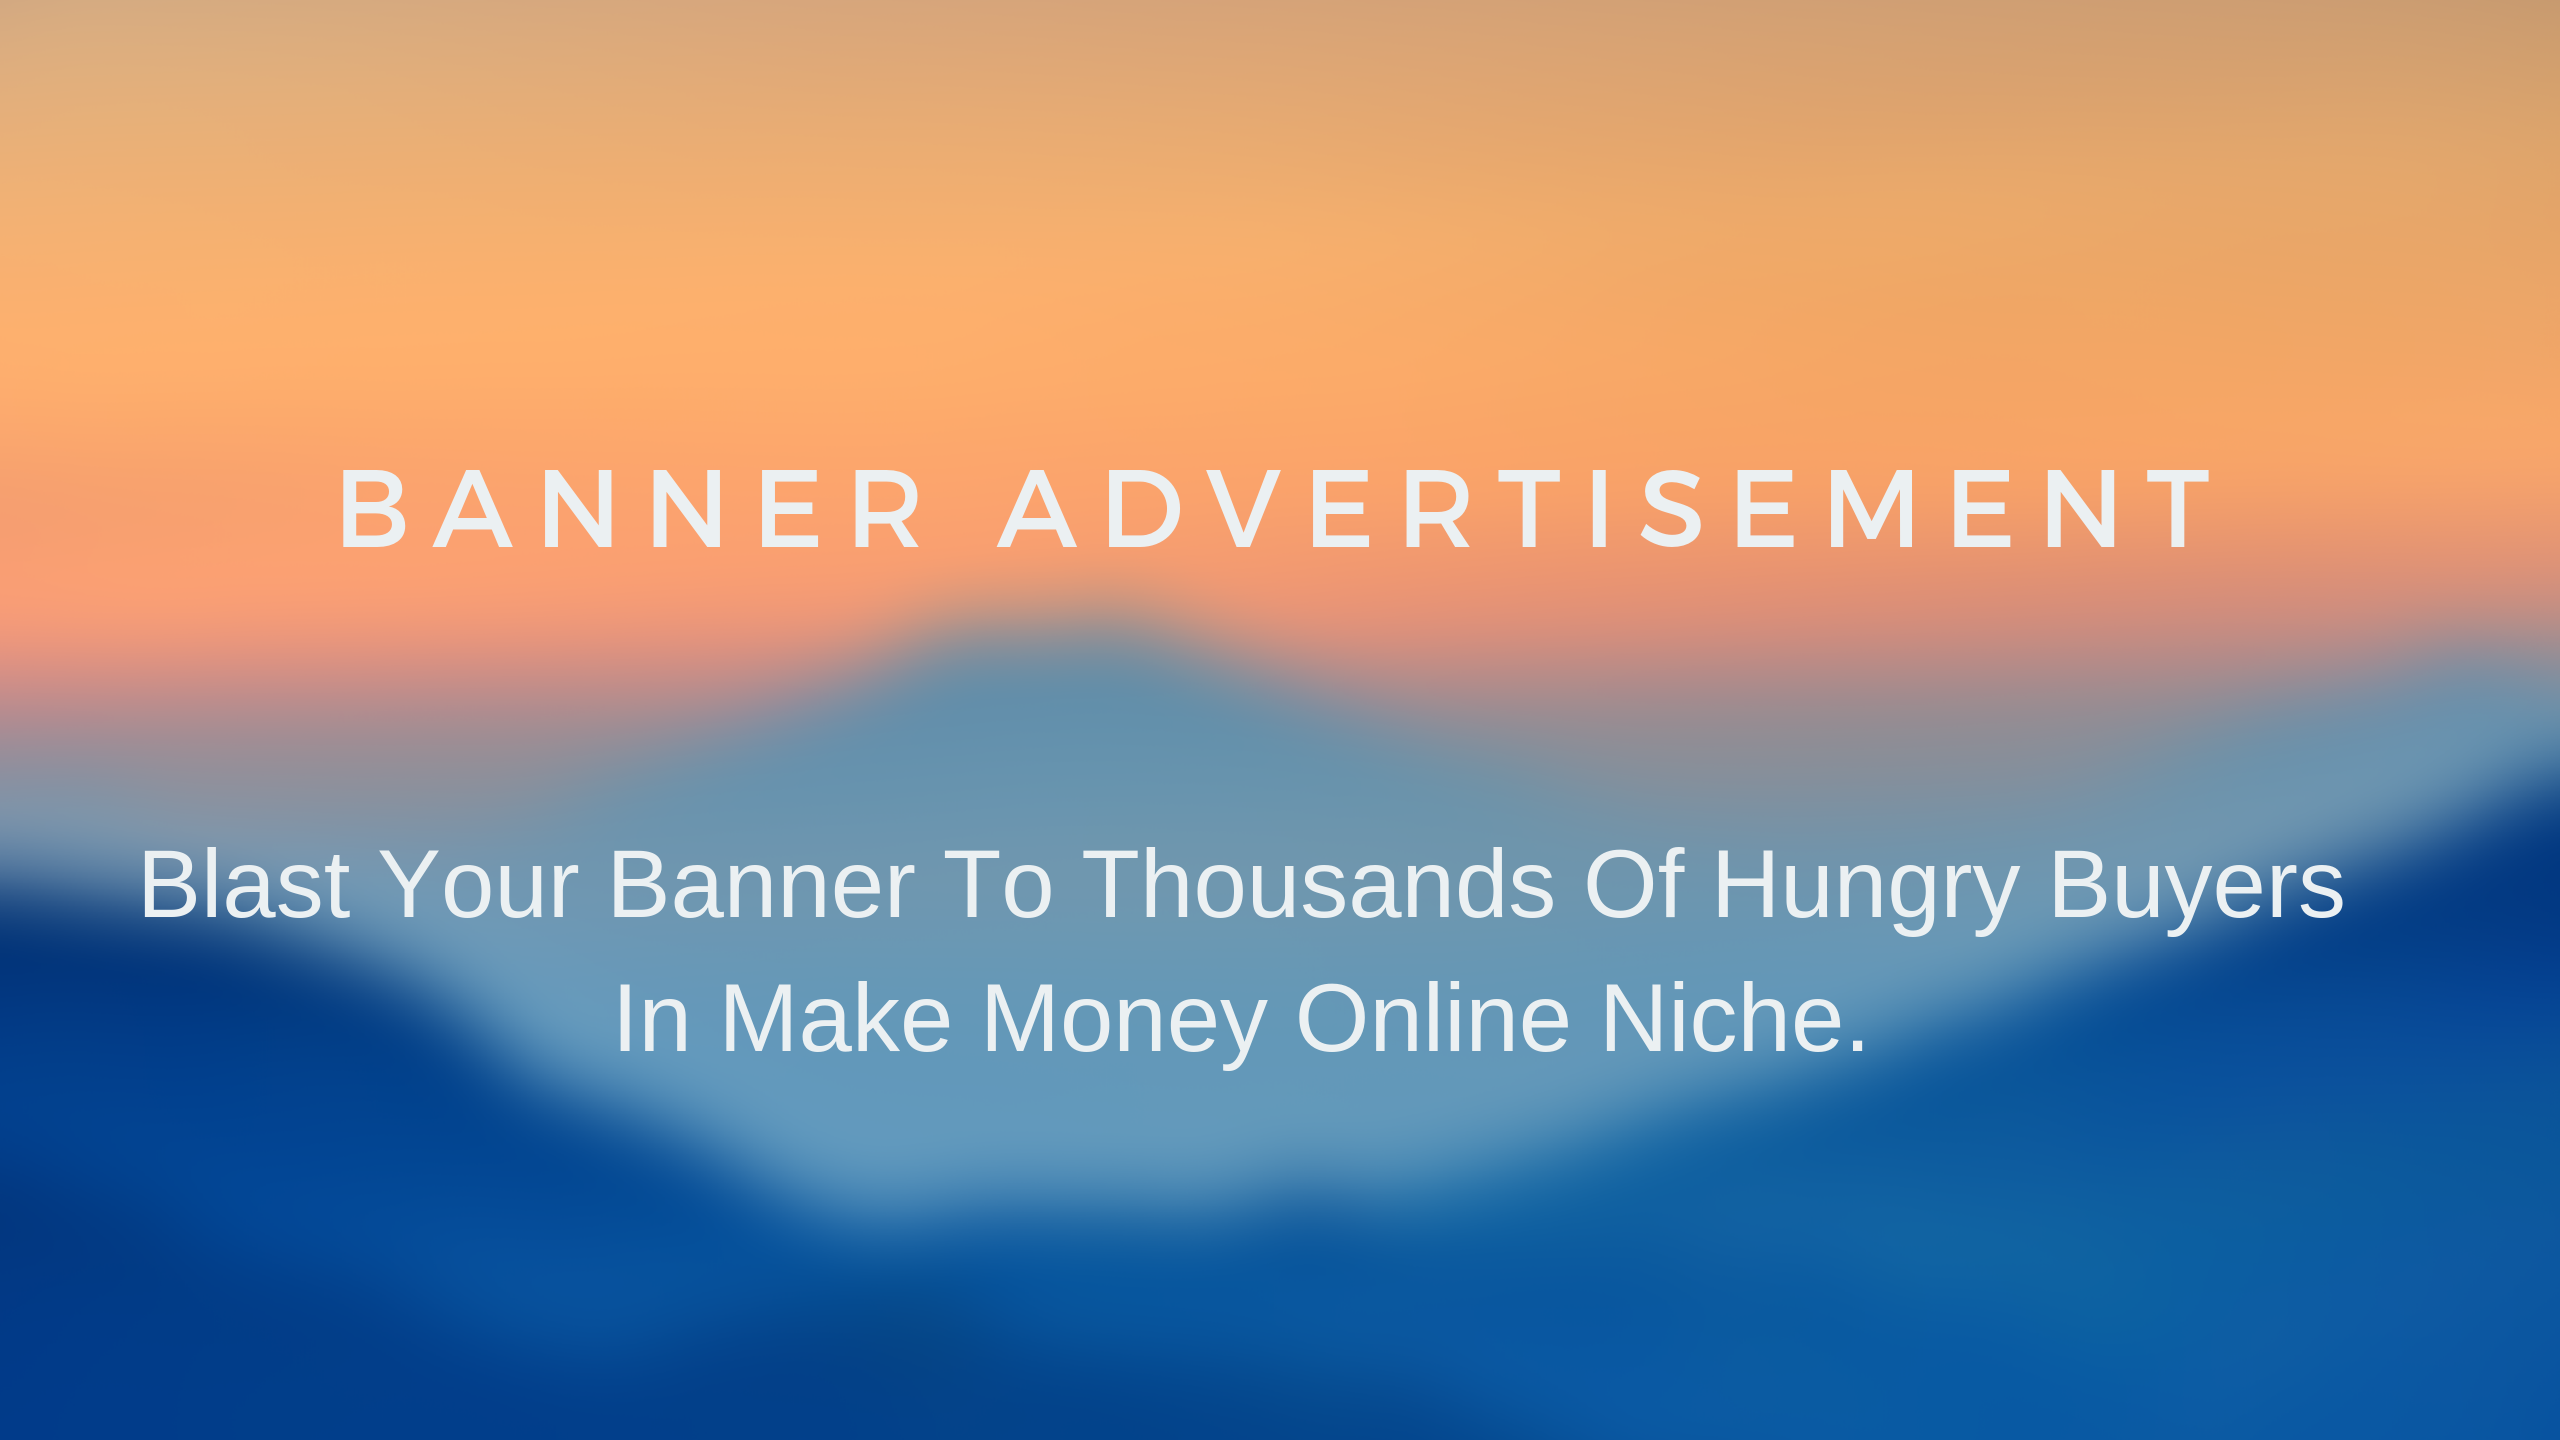 Blast Your Banner Advertisement To 3 Thousand People